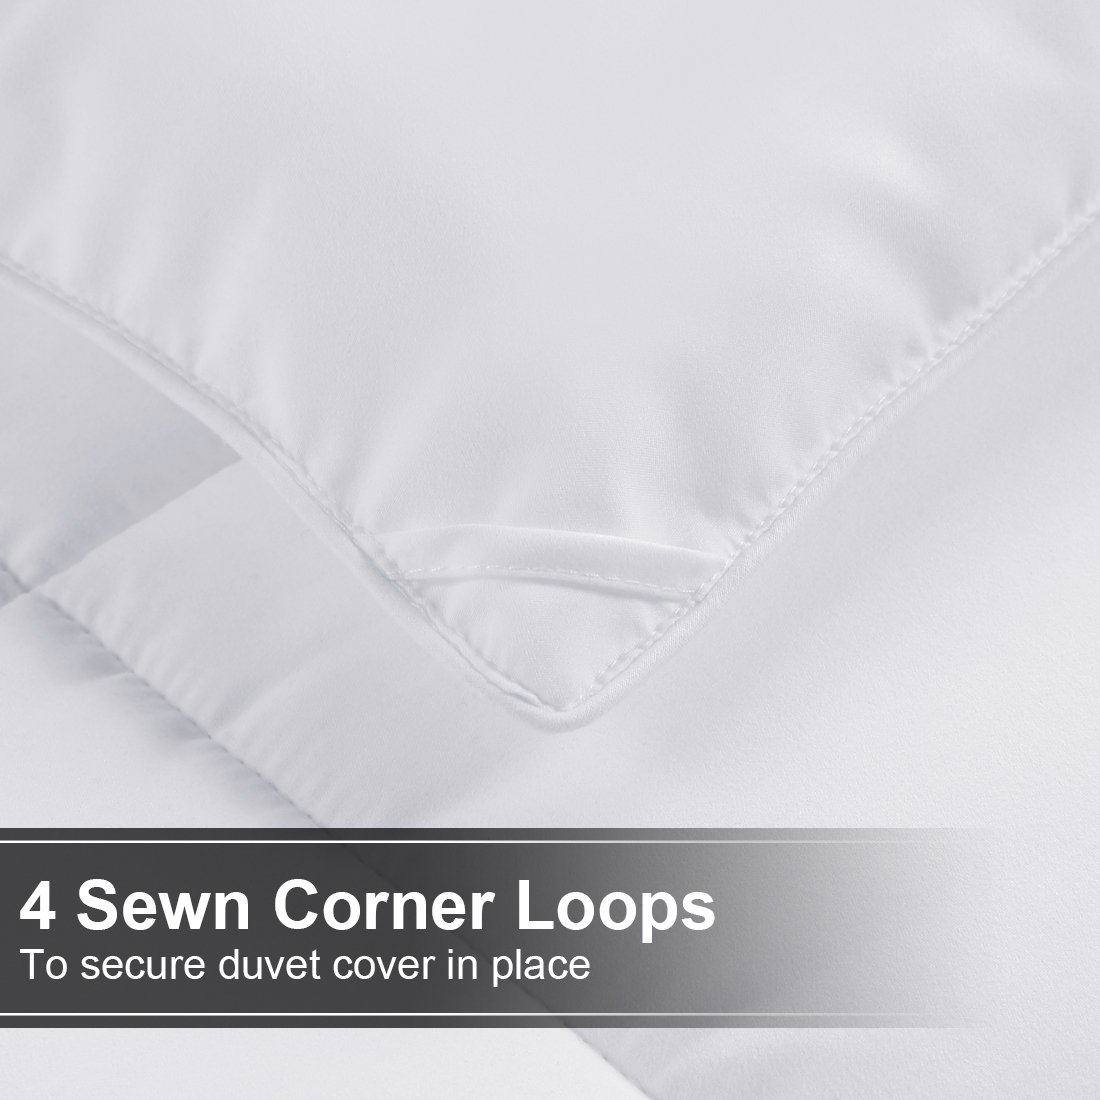 All Season Queen Goose Down Alternative Quilted Comforter with Corner Tabs - Hypoallergenic -Double Plush Fabric -Super Microfiber Fill -Machine Washable - Duvet Insert & Stand-Alone Comforter - White by Balichun (Image #4)